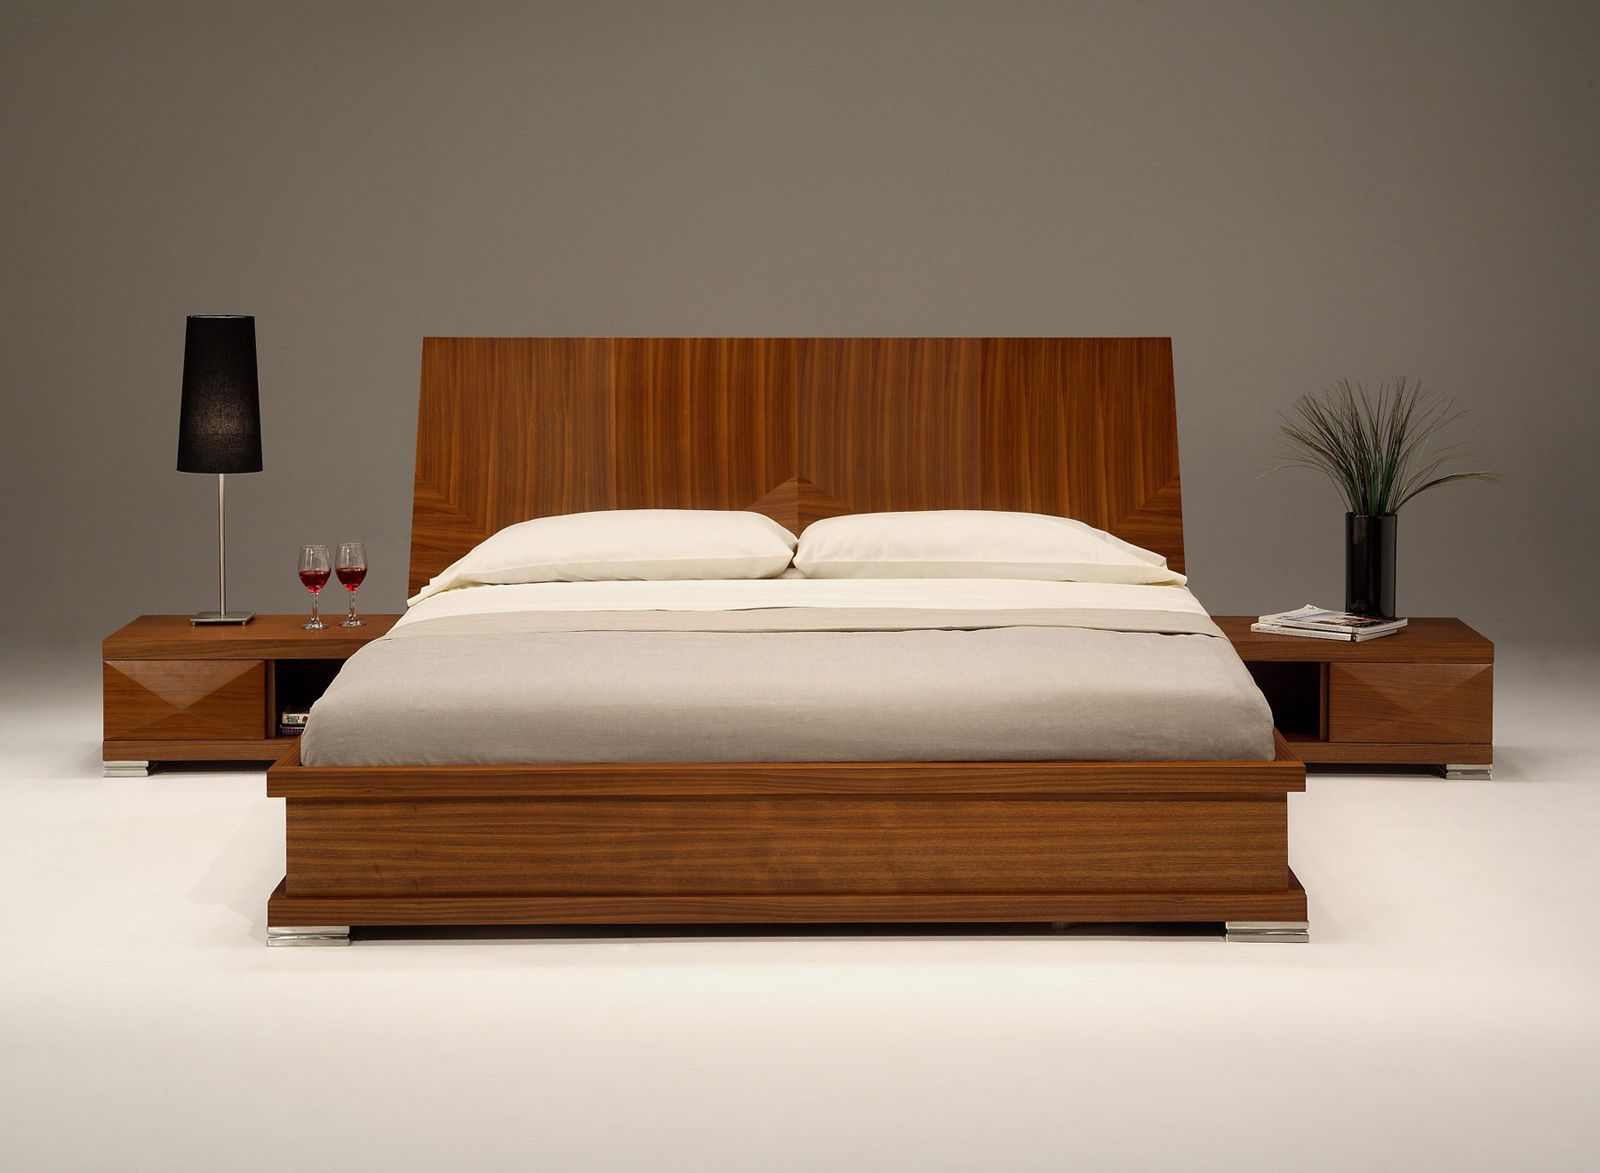 Bedroom design tips with modern bedroom furniture for Contemporary bed designs